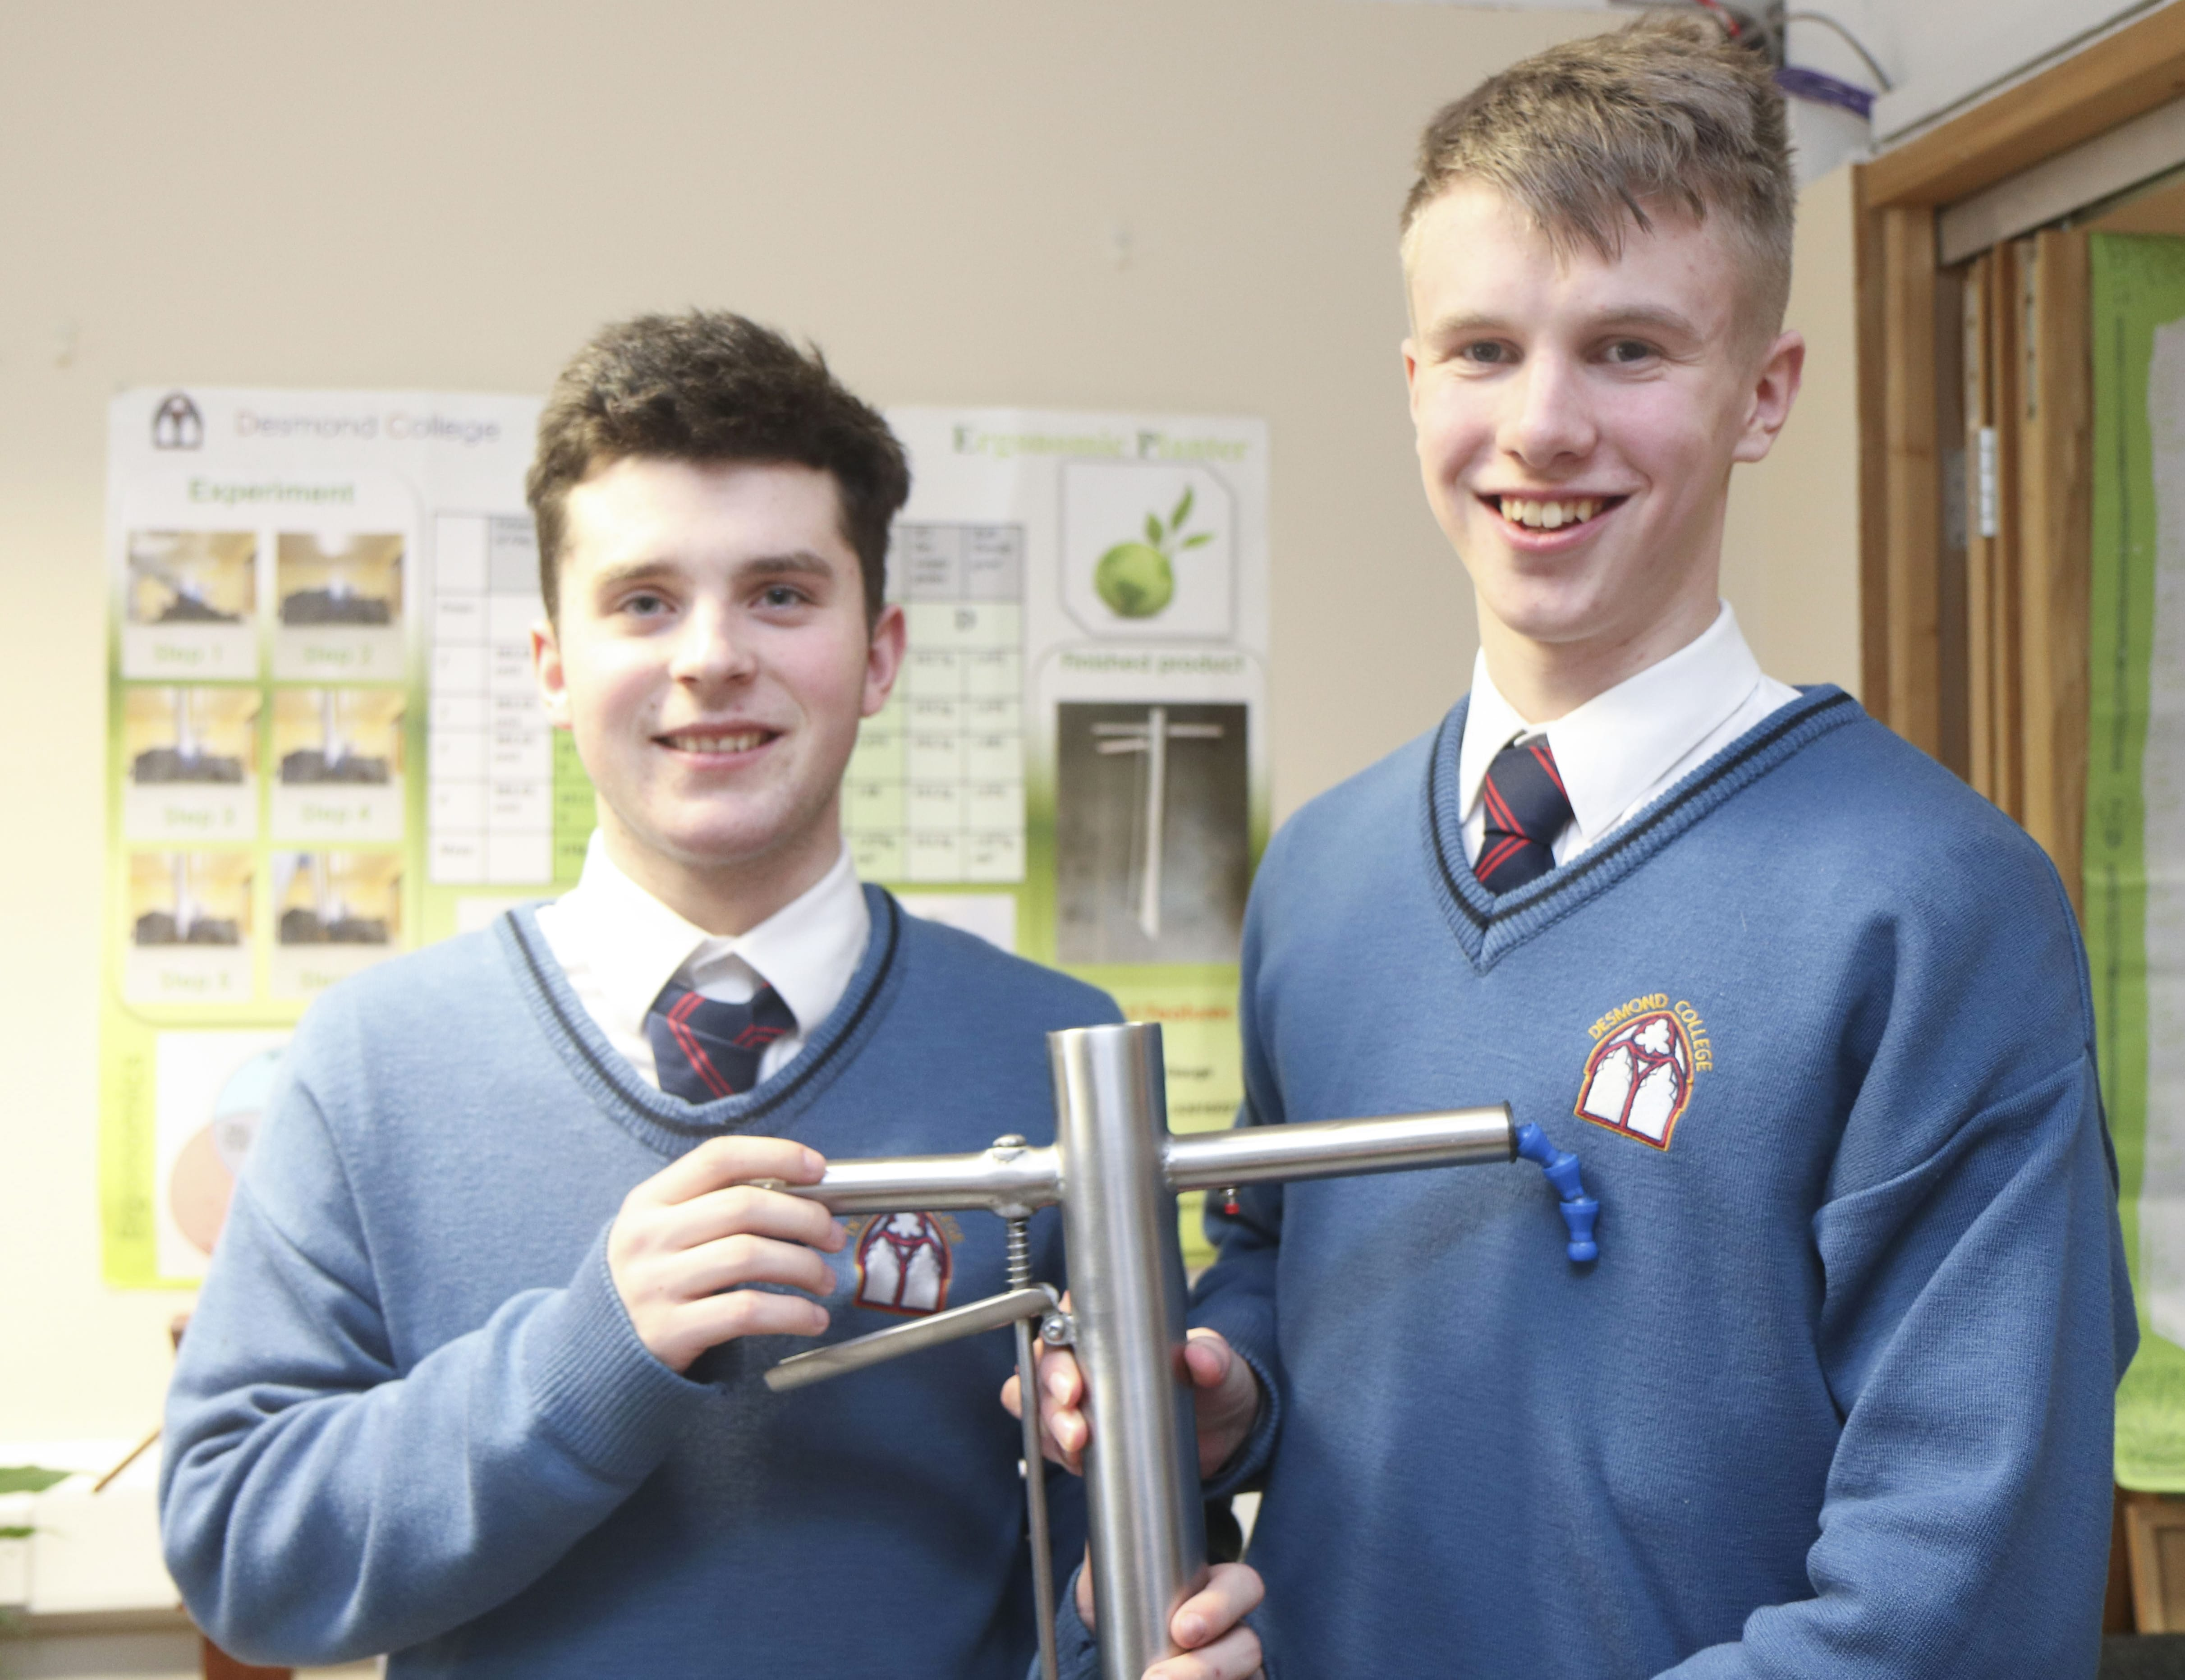 January 2018: Diarmuid Curtin and Jack O Connor with their handheld seed planting device